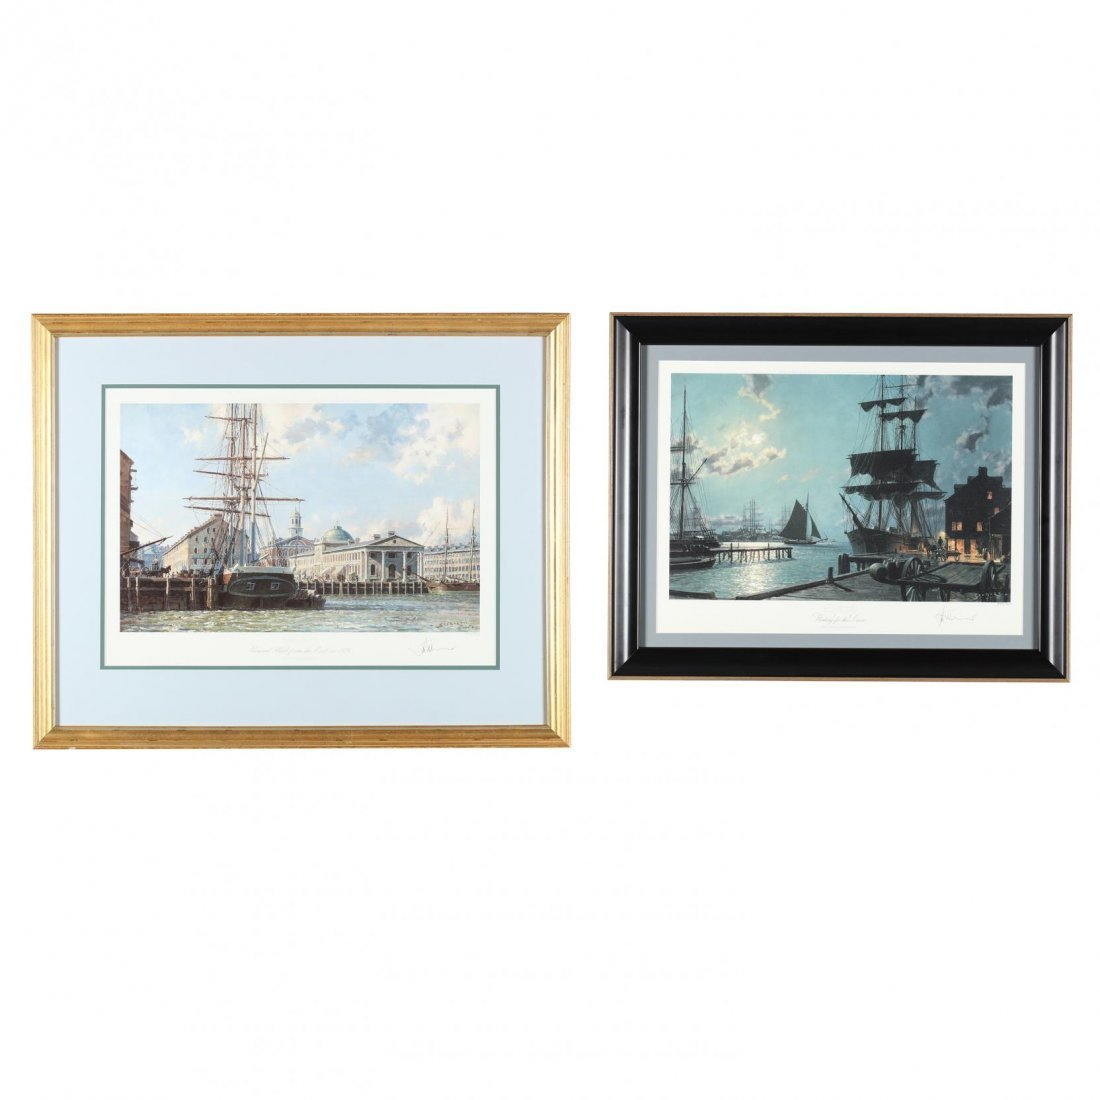 Two Views of Boston after John Stobart (Br./Am., b.